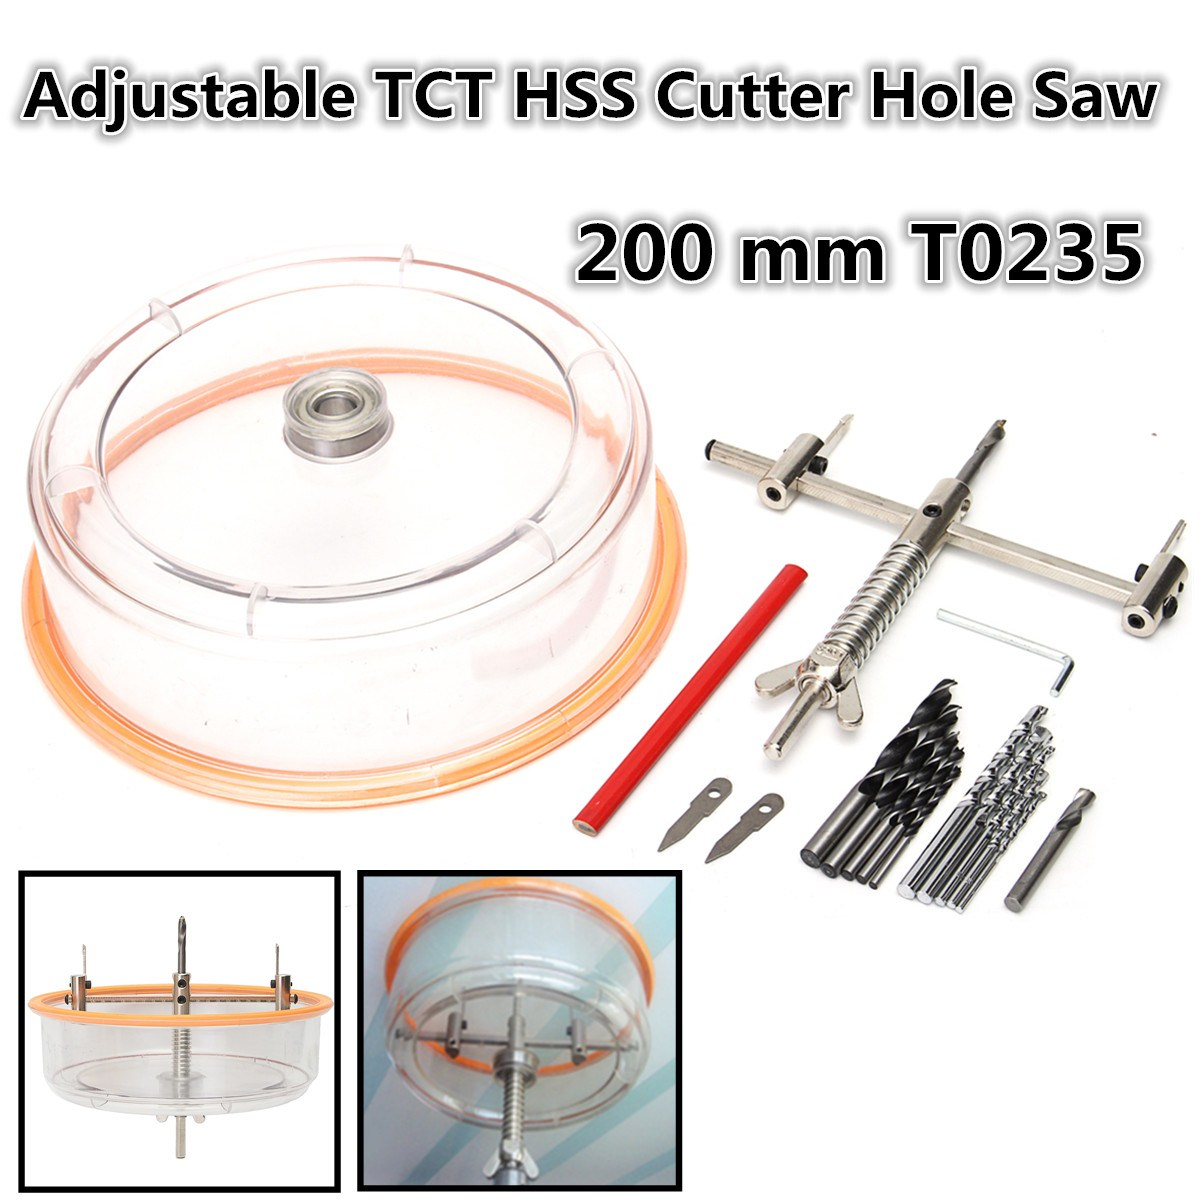 1Set New High Quality Adjustable Downlight Holesaw Ceiling Wall TCT HSS Cutter Hole Saw 200 mm T0235 pegasi high quality 5pcs 50 sizes hss